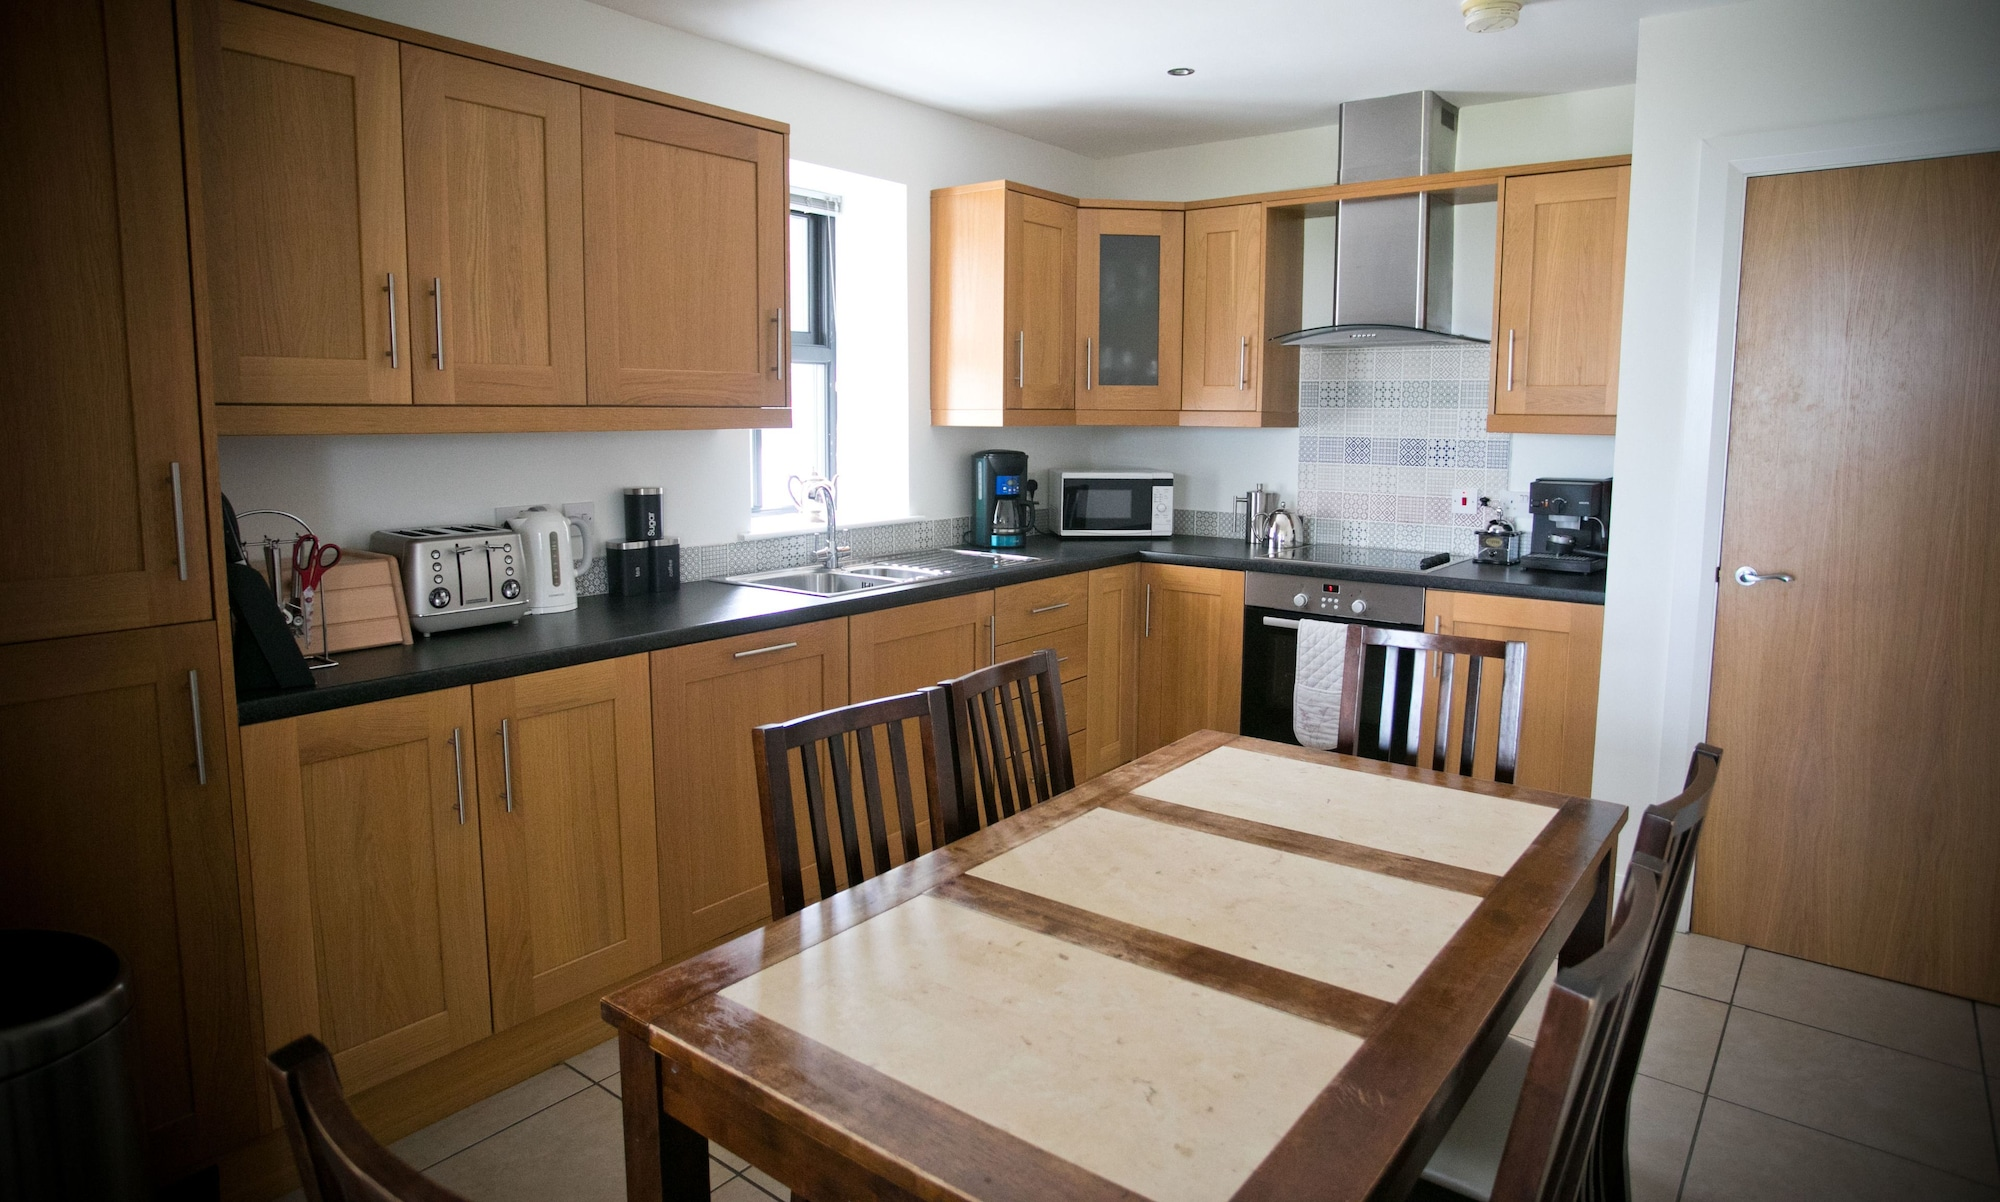 Bayview Farm Holiday Cottages, Causeway Coast and Glens